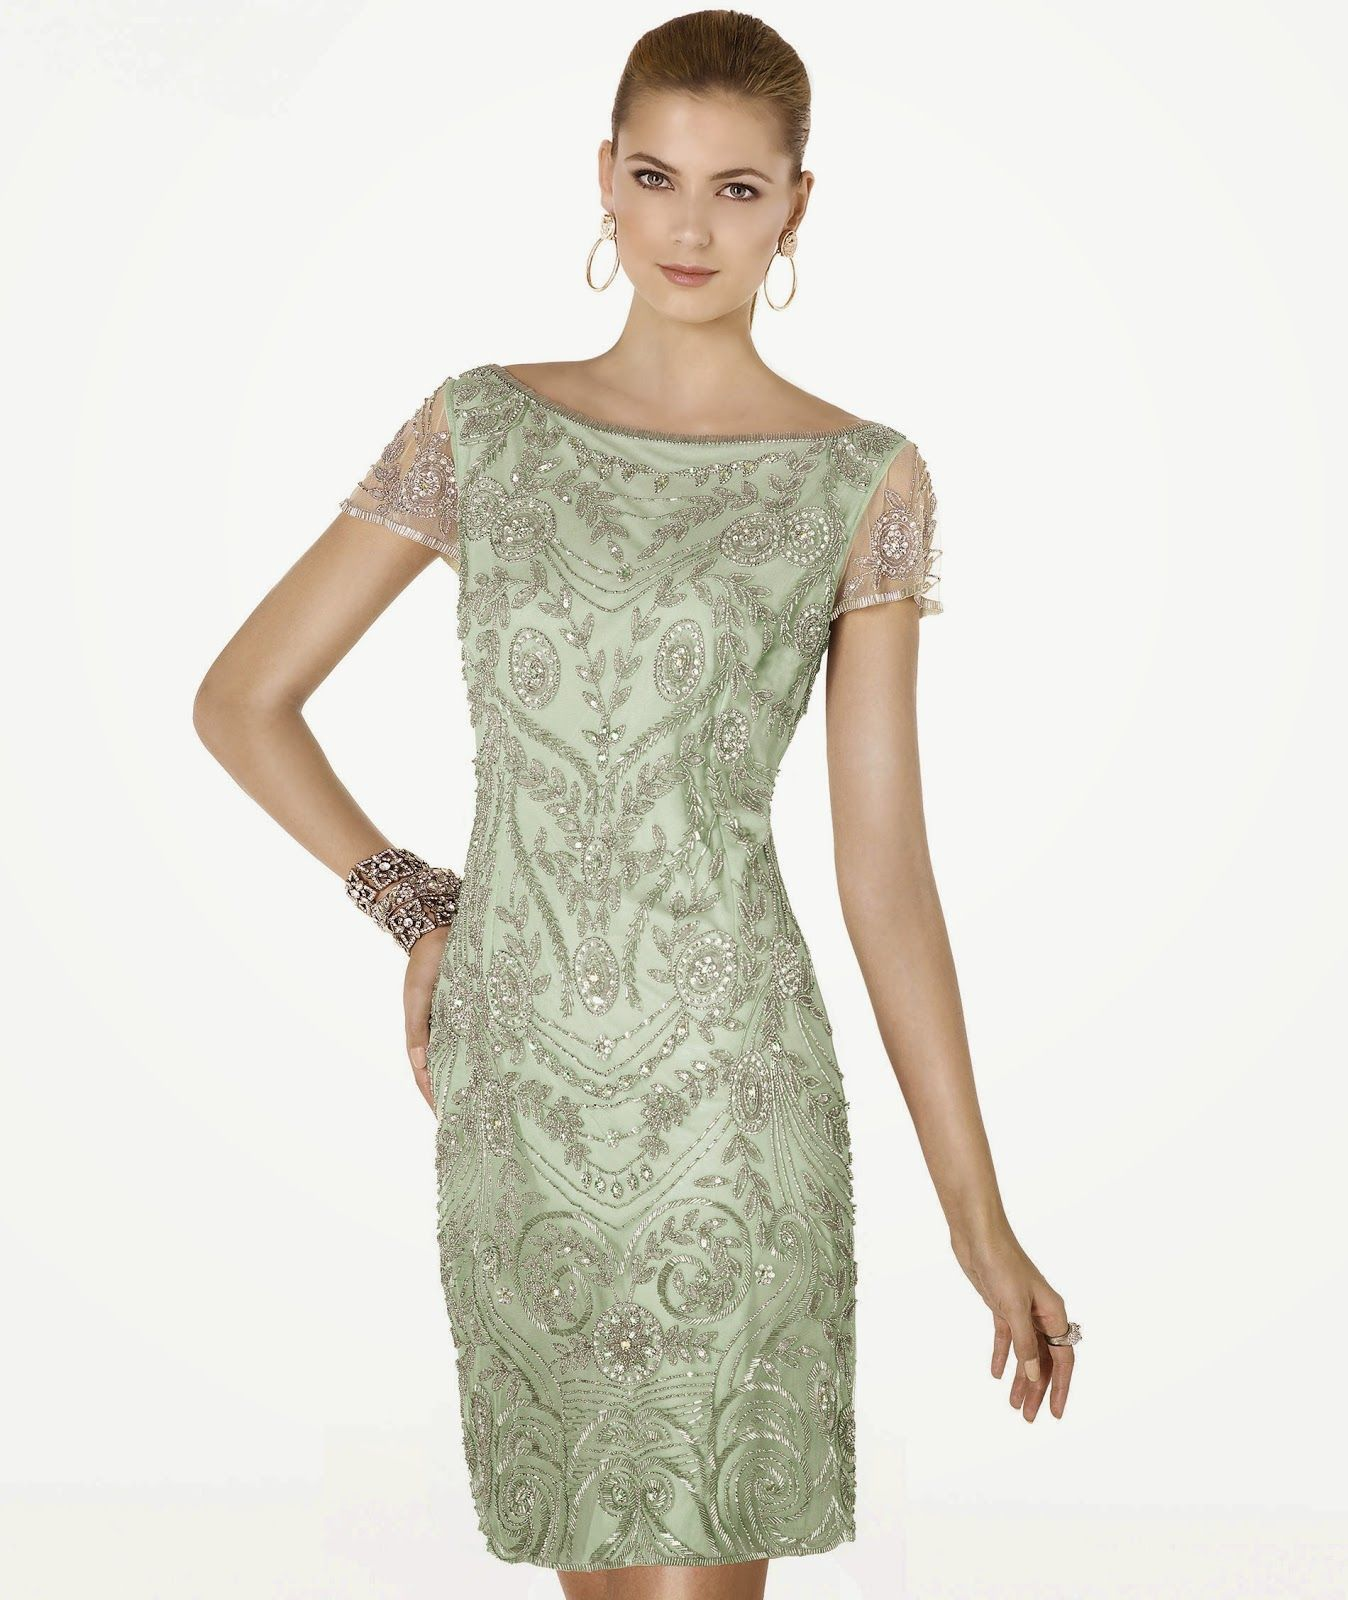 Affordable fashion dresses gowns popular trends celebrities